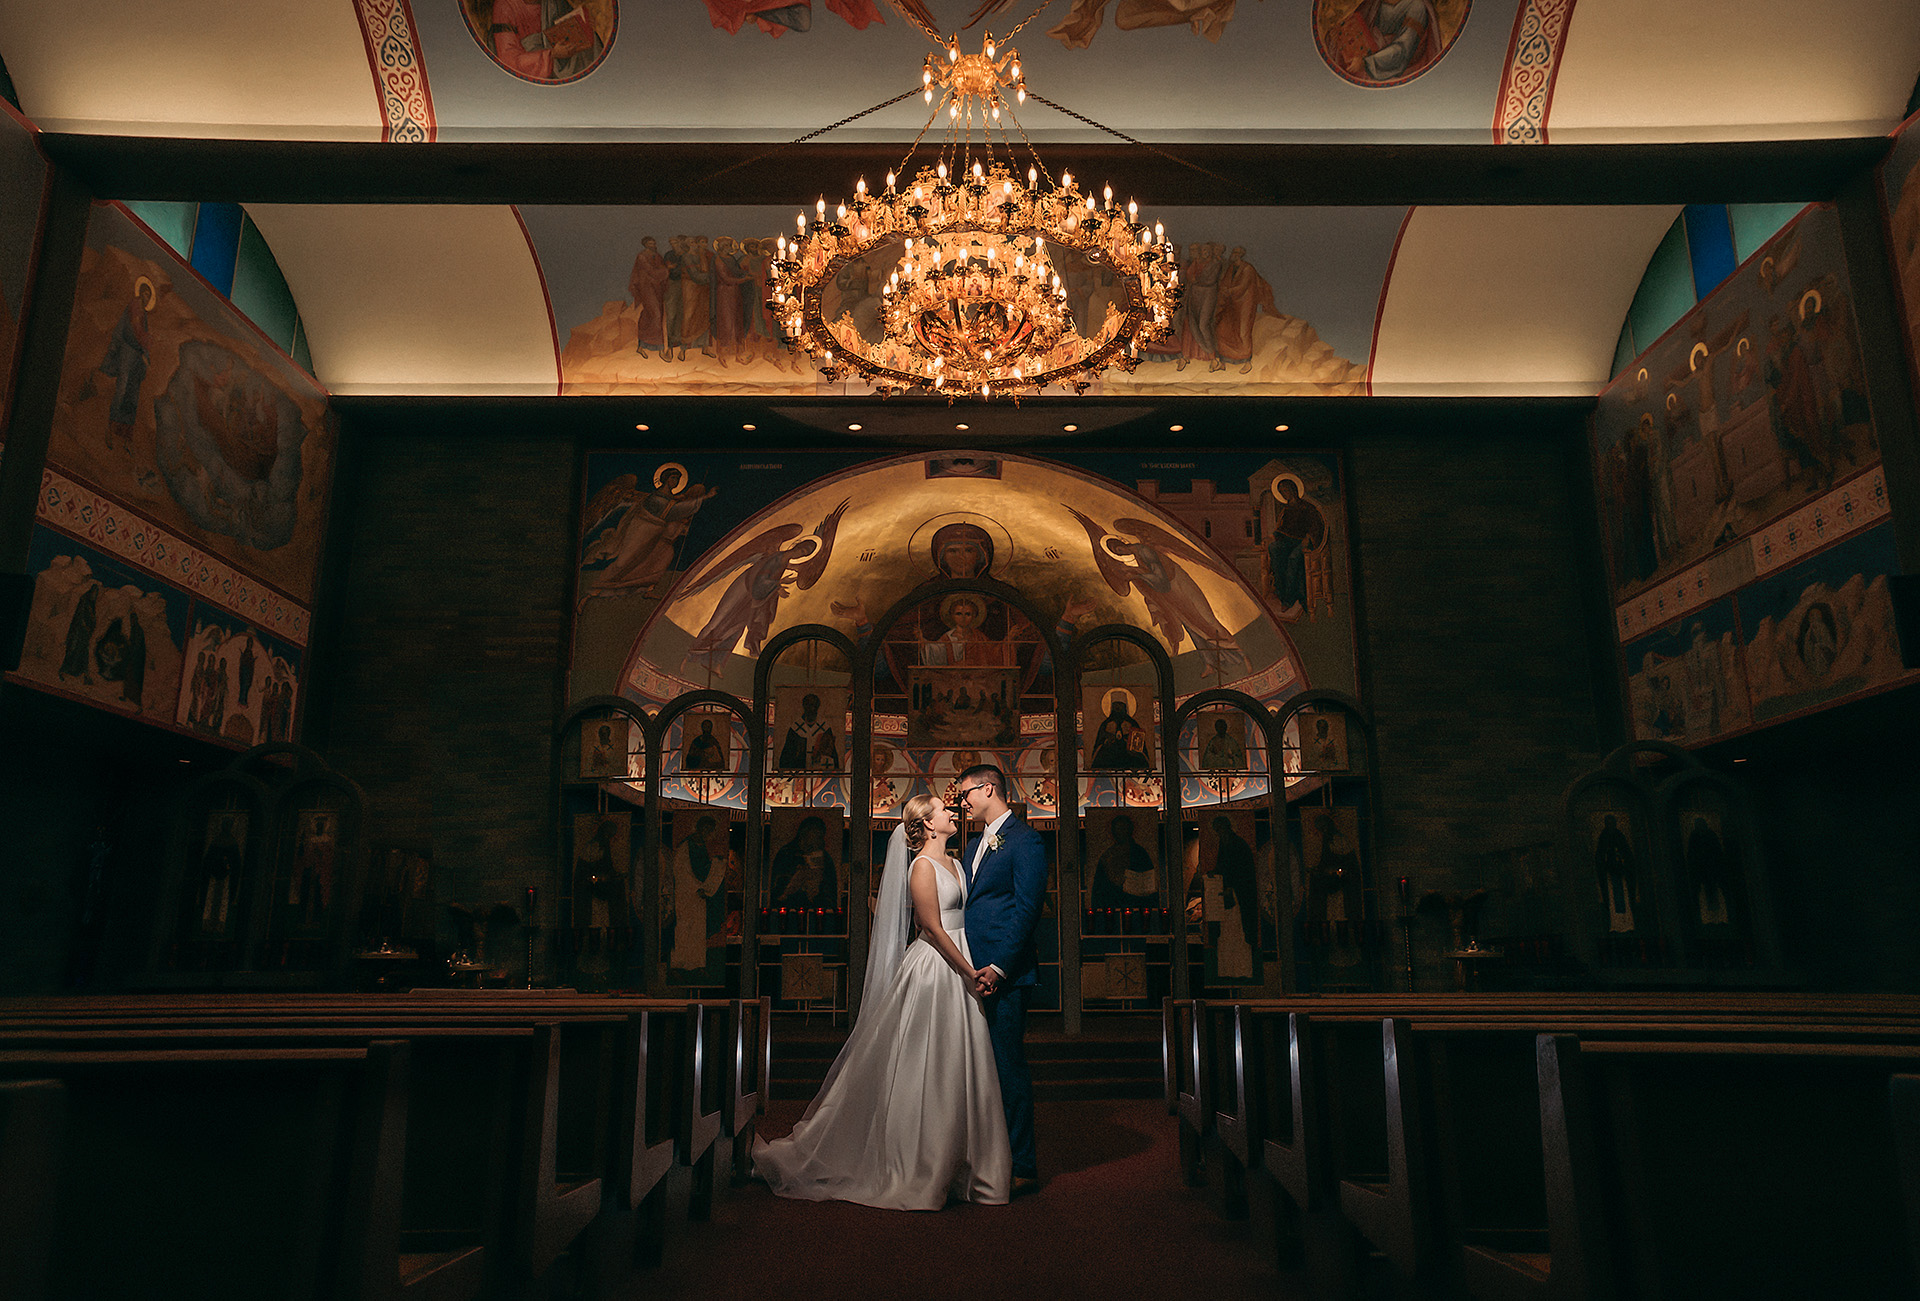 Orthodox Wedding Ceremony with Bride and Groom Under Stunning Gold Chandelier | by Kropp Photography